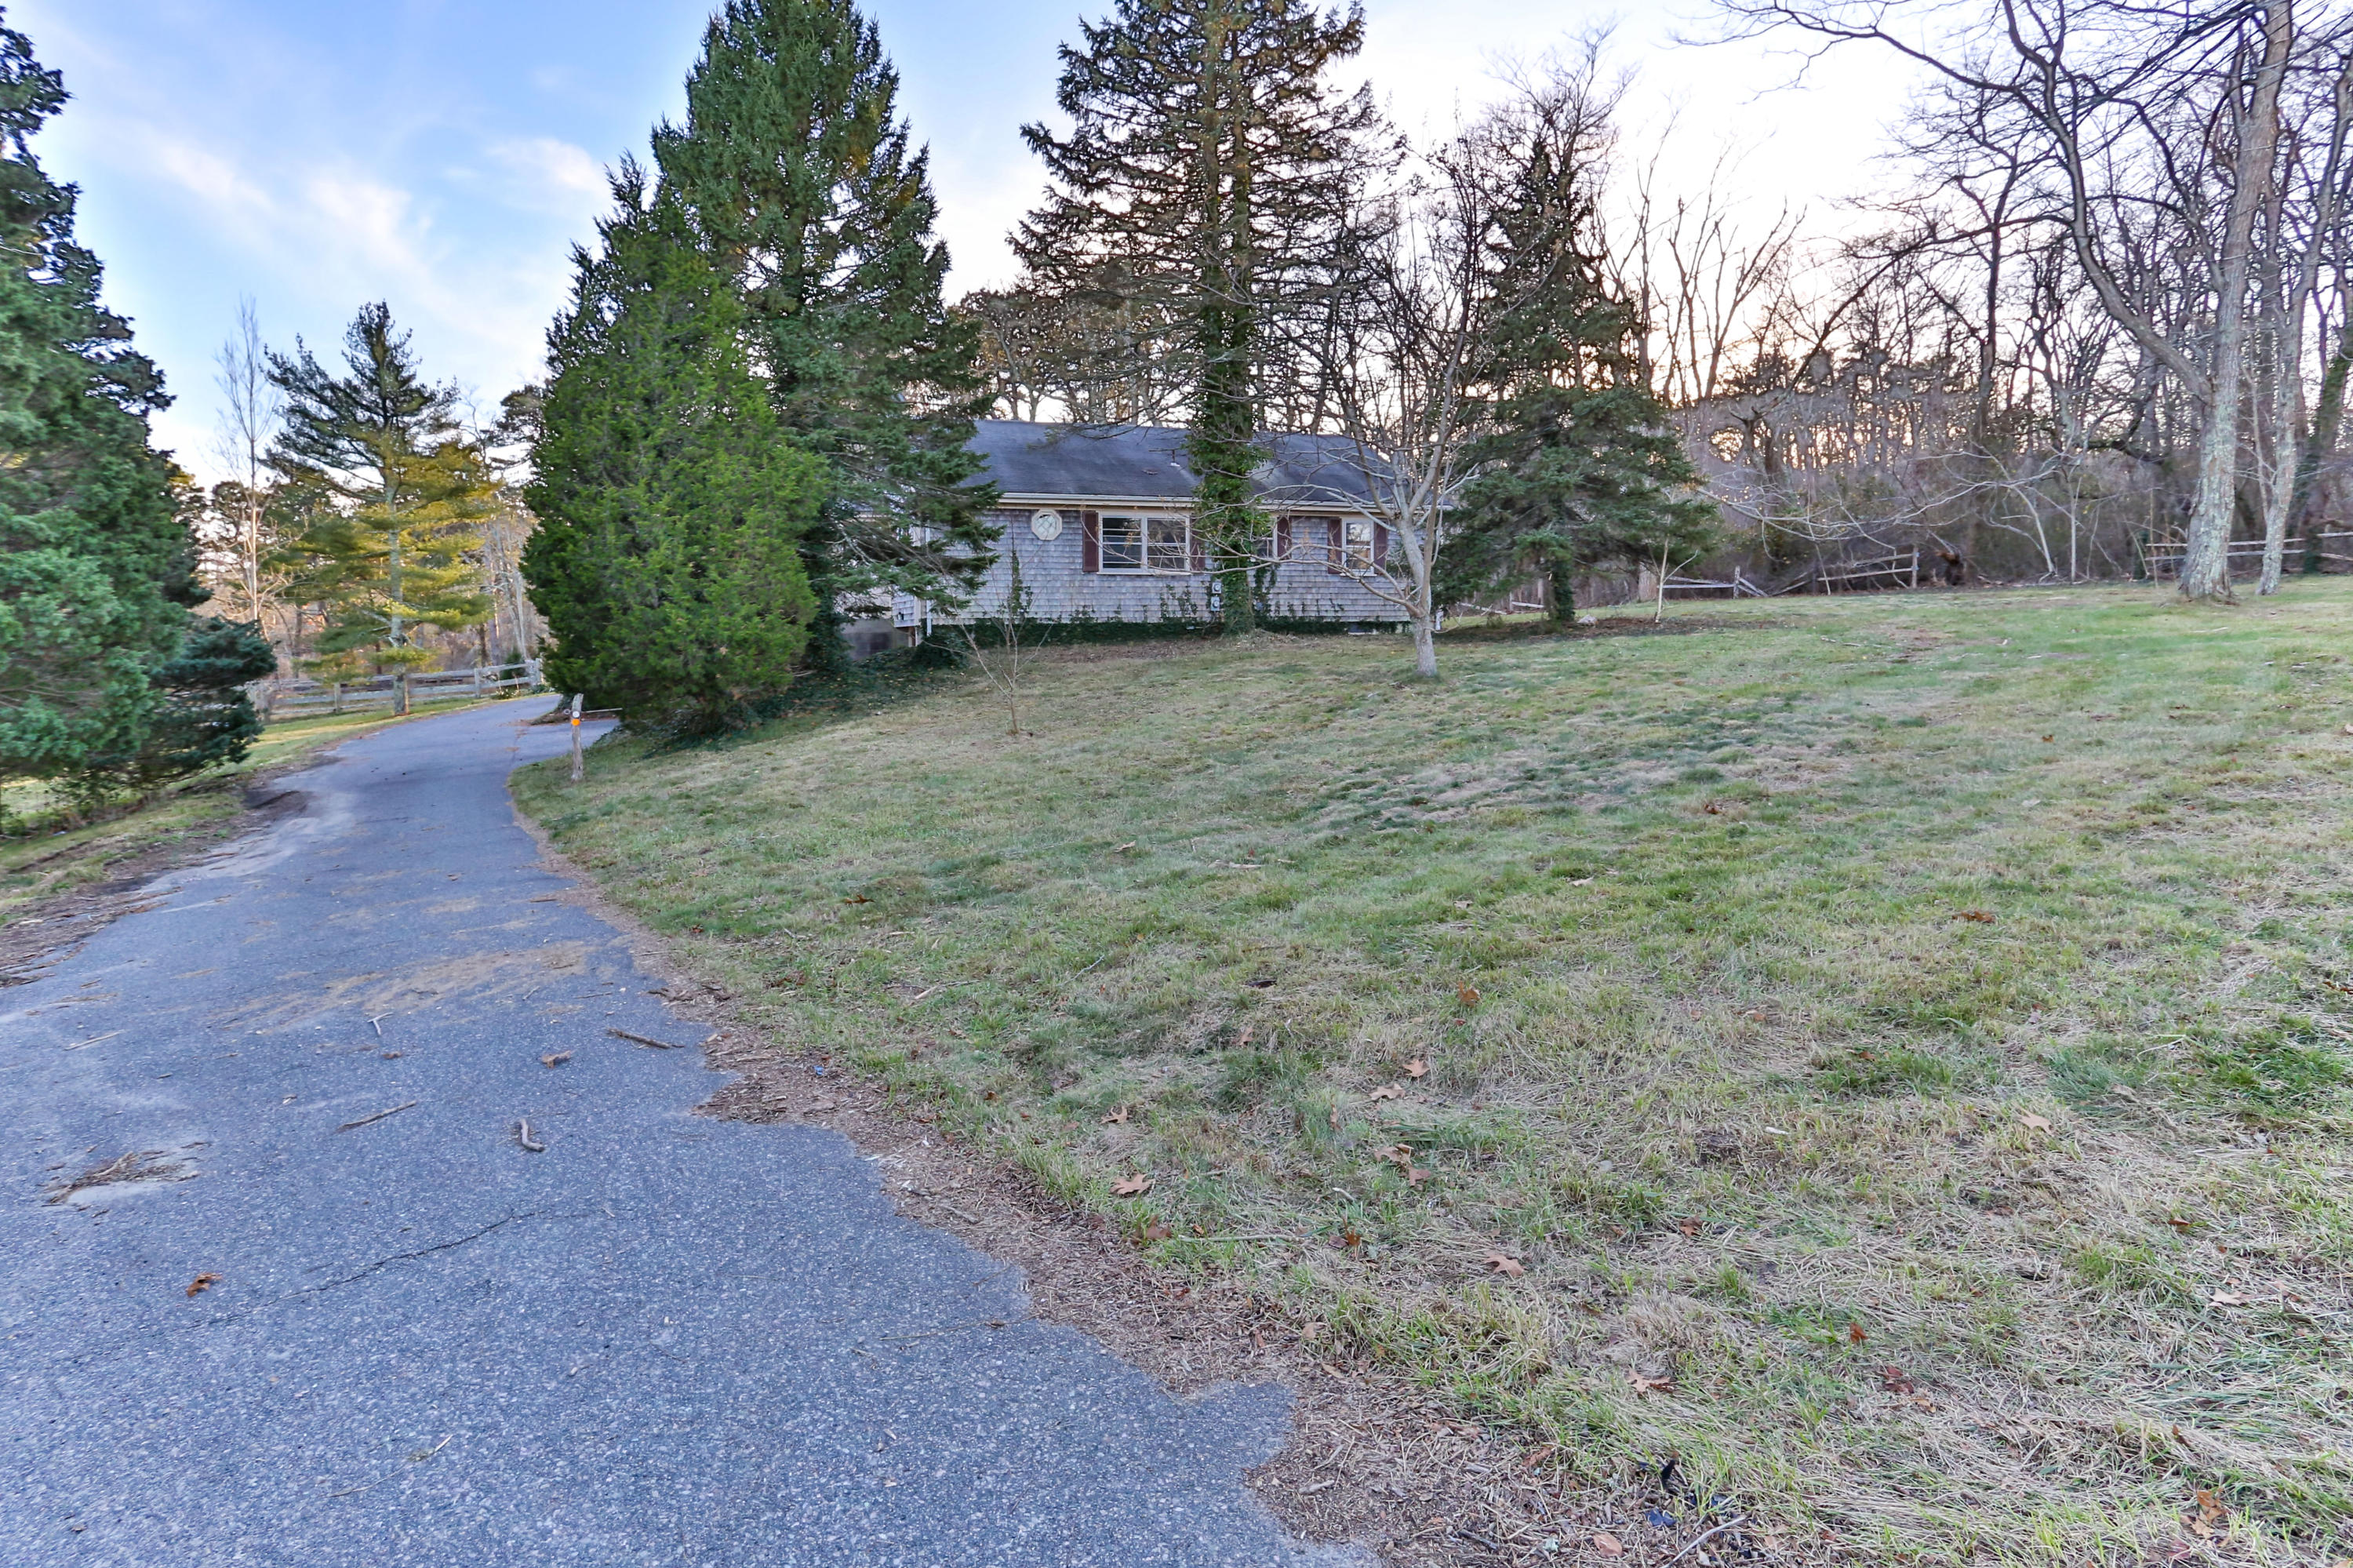 click to view more details 3936 Main Street, Brewster, MA 02631